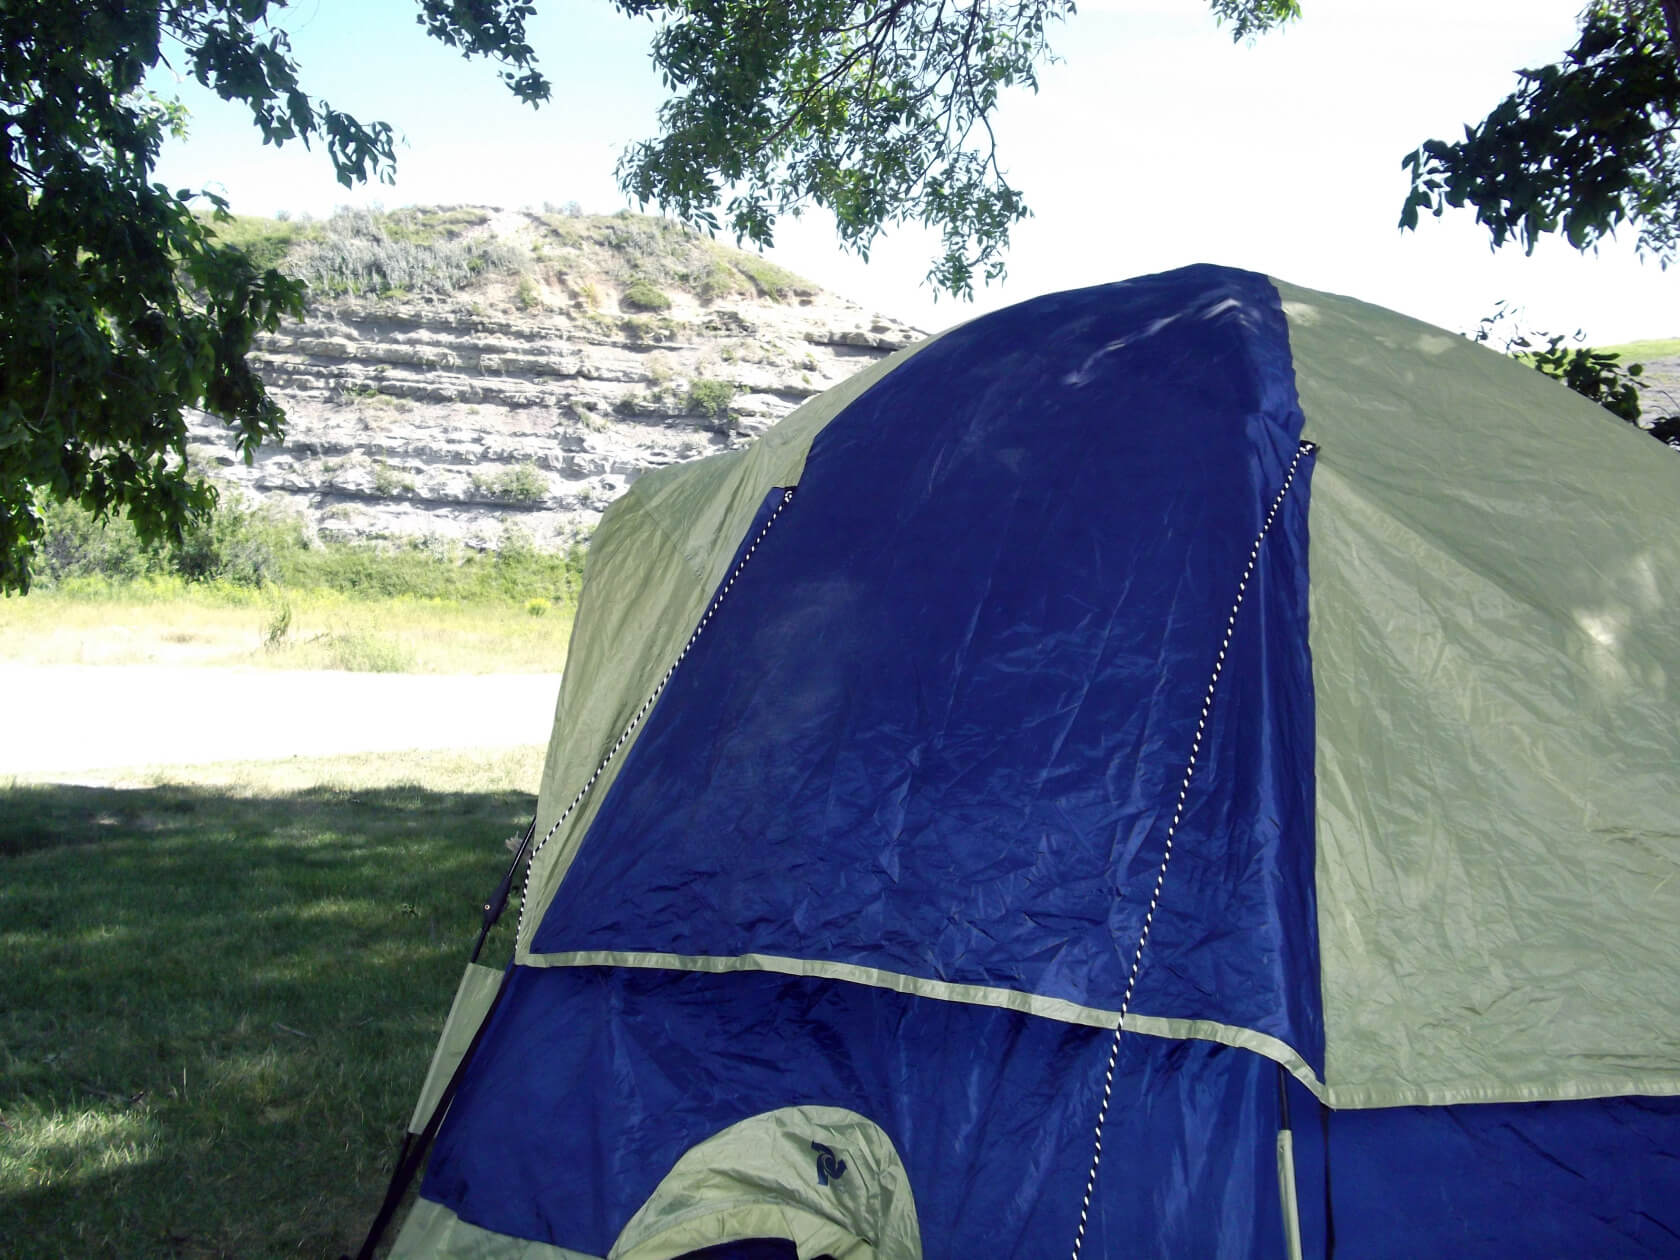 Camping at St. Mary's Reservoir